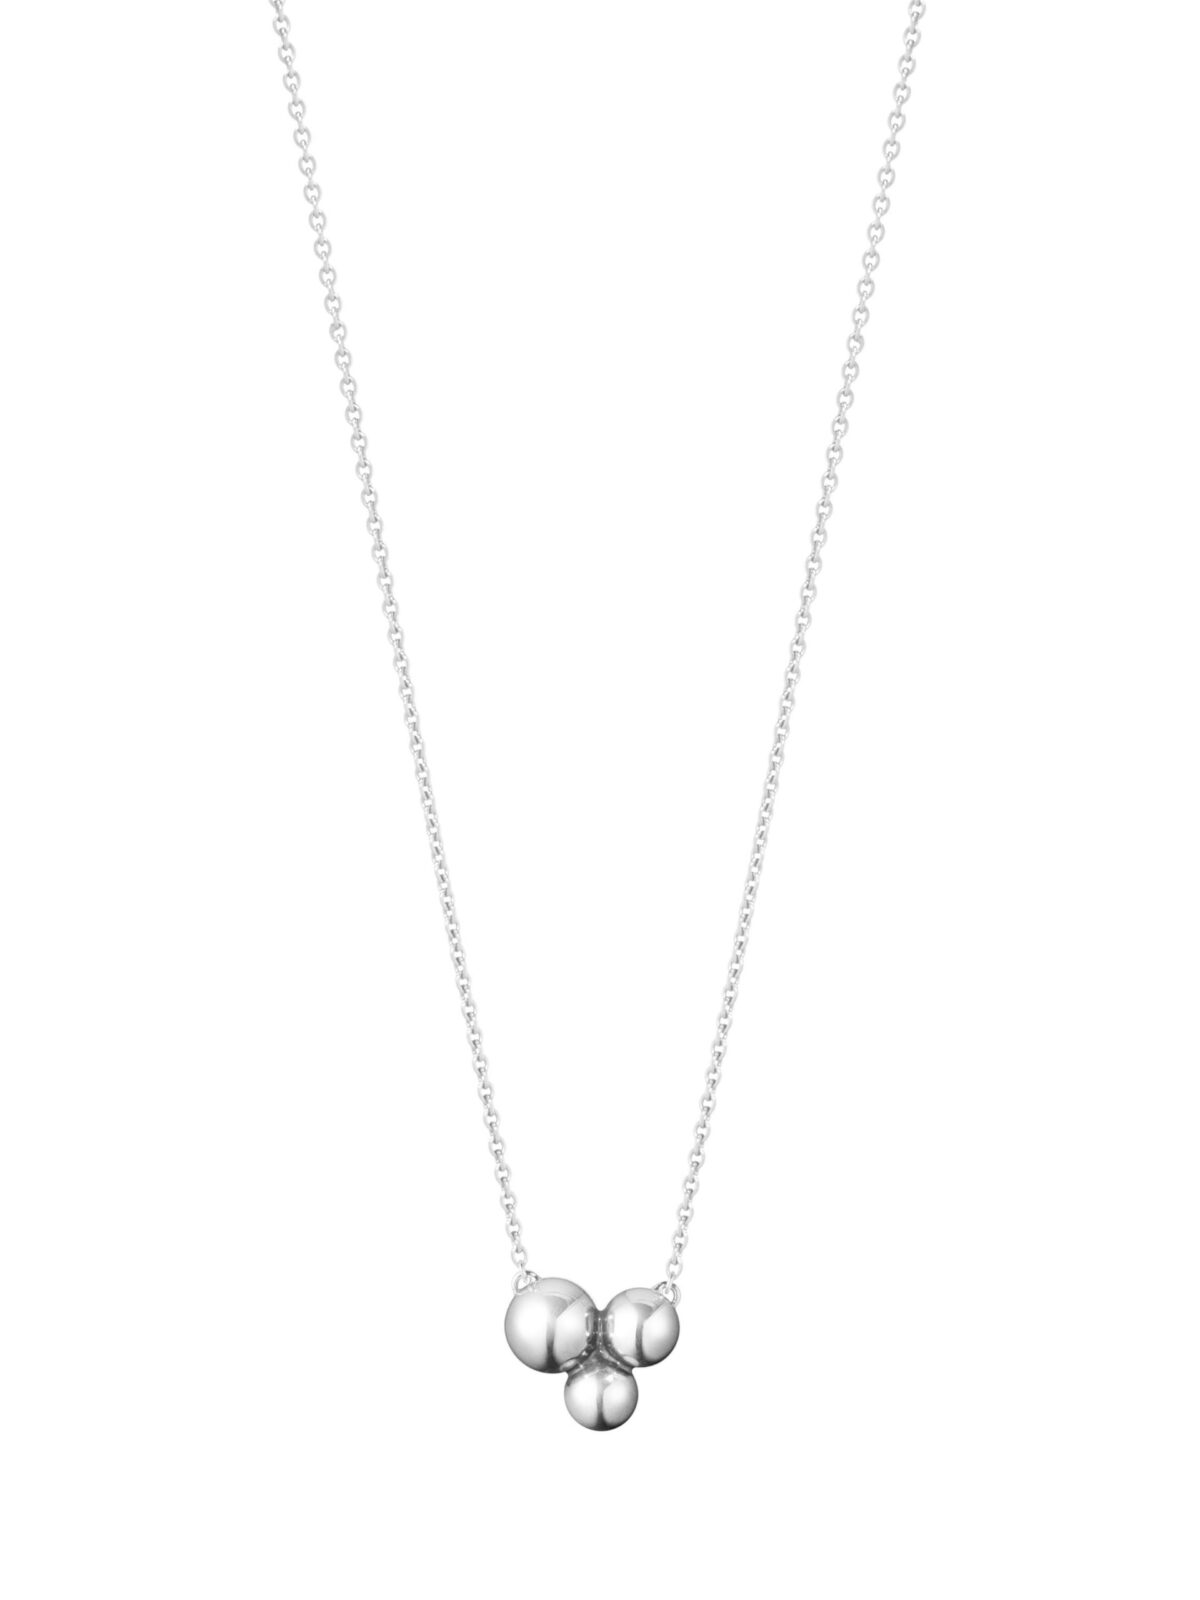 Moonlight Grapes Sterling Silver Trio Necklace